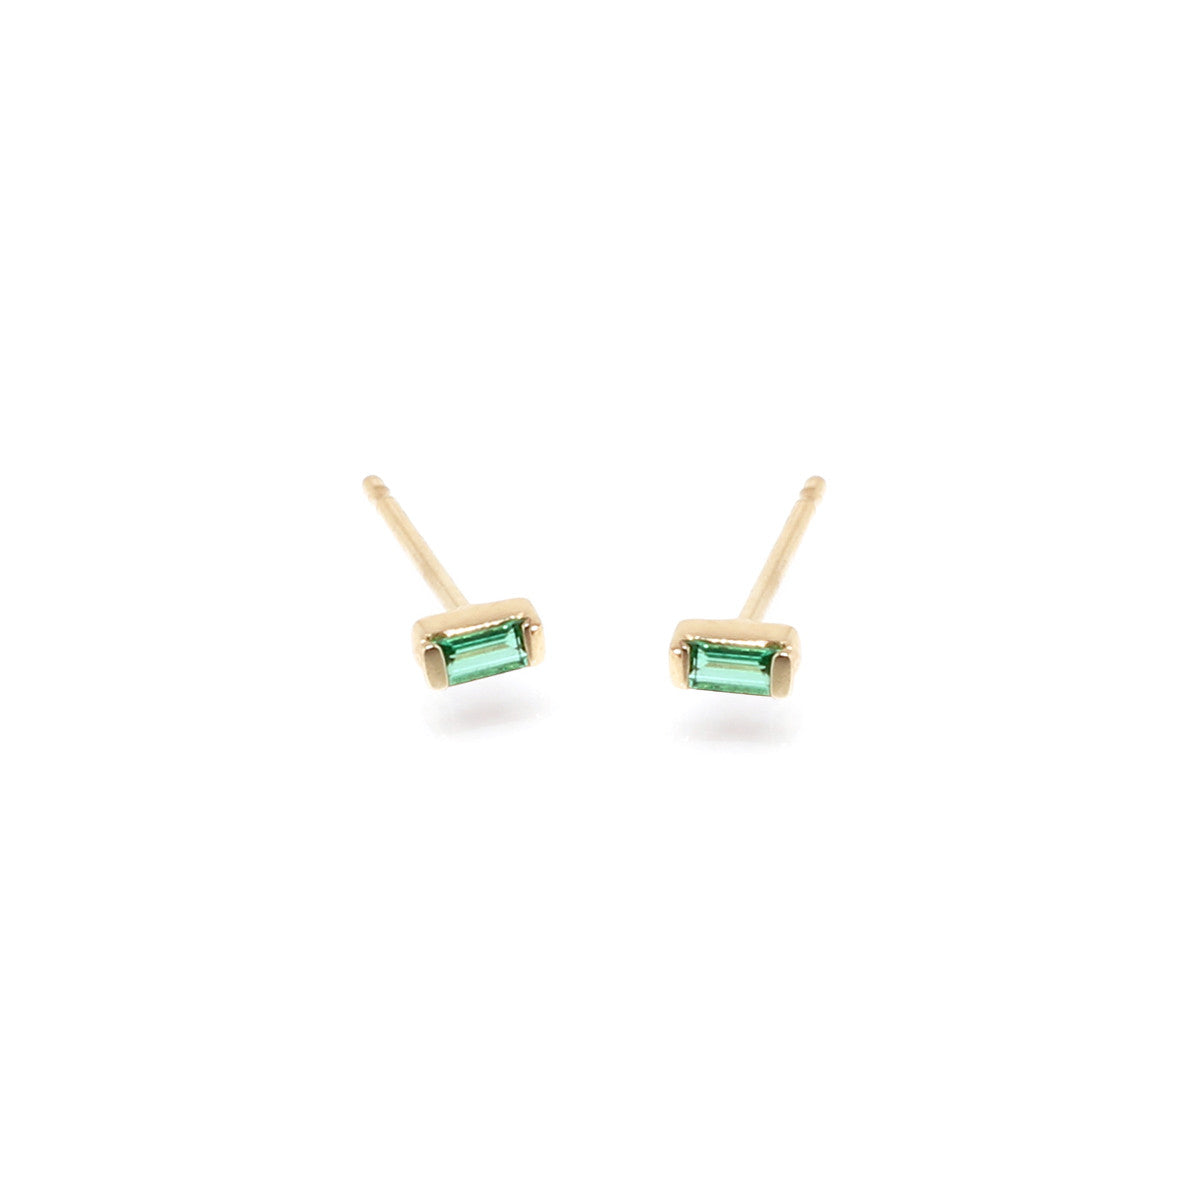 Zoë Chicco 14kt Yellow Gold Emerald Baguette Stud Earrings